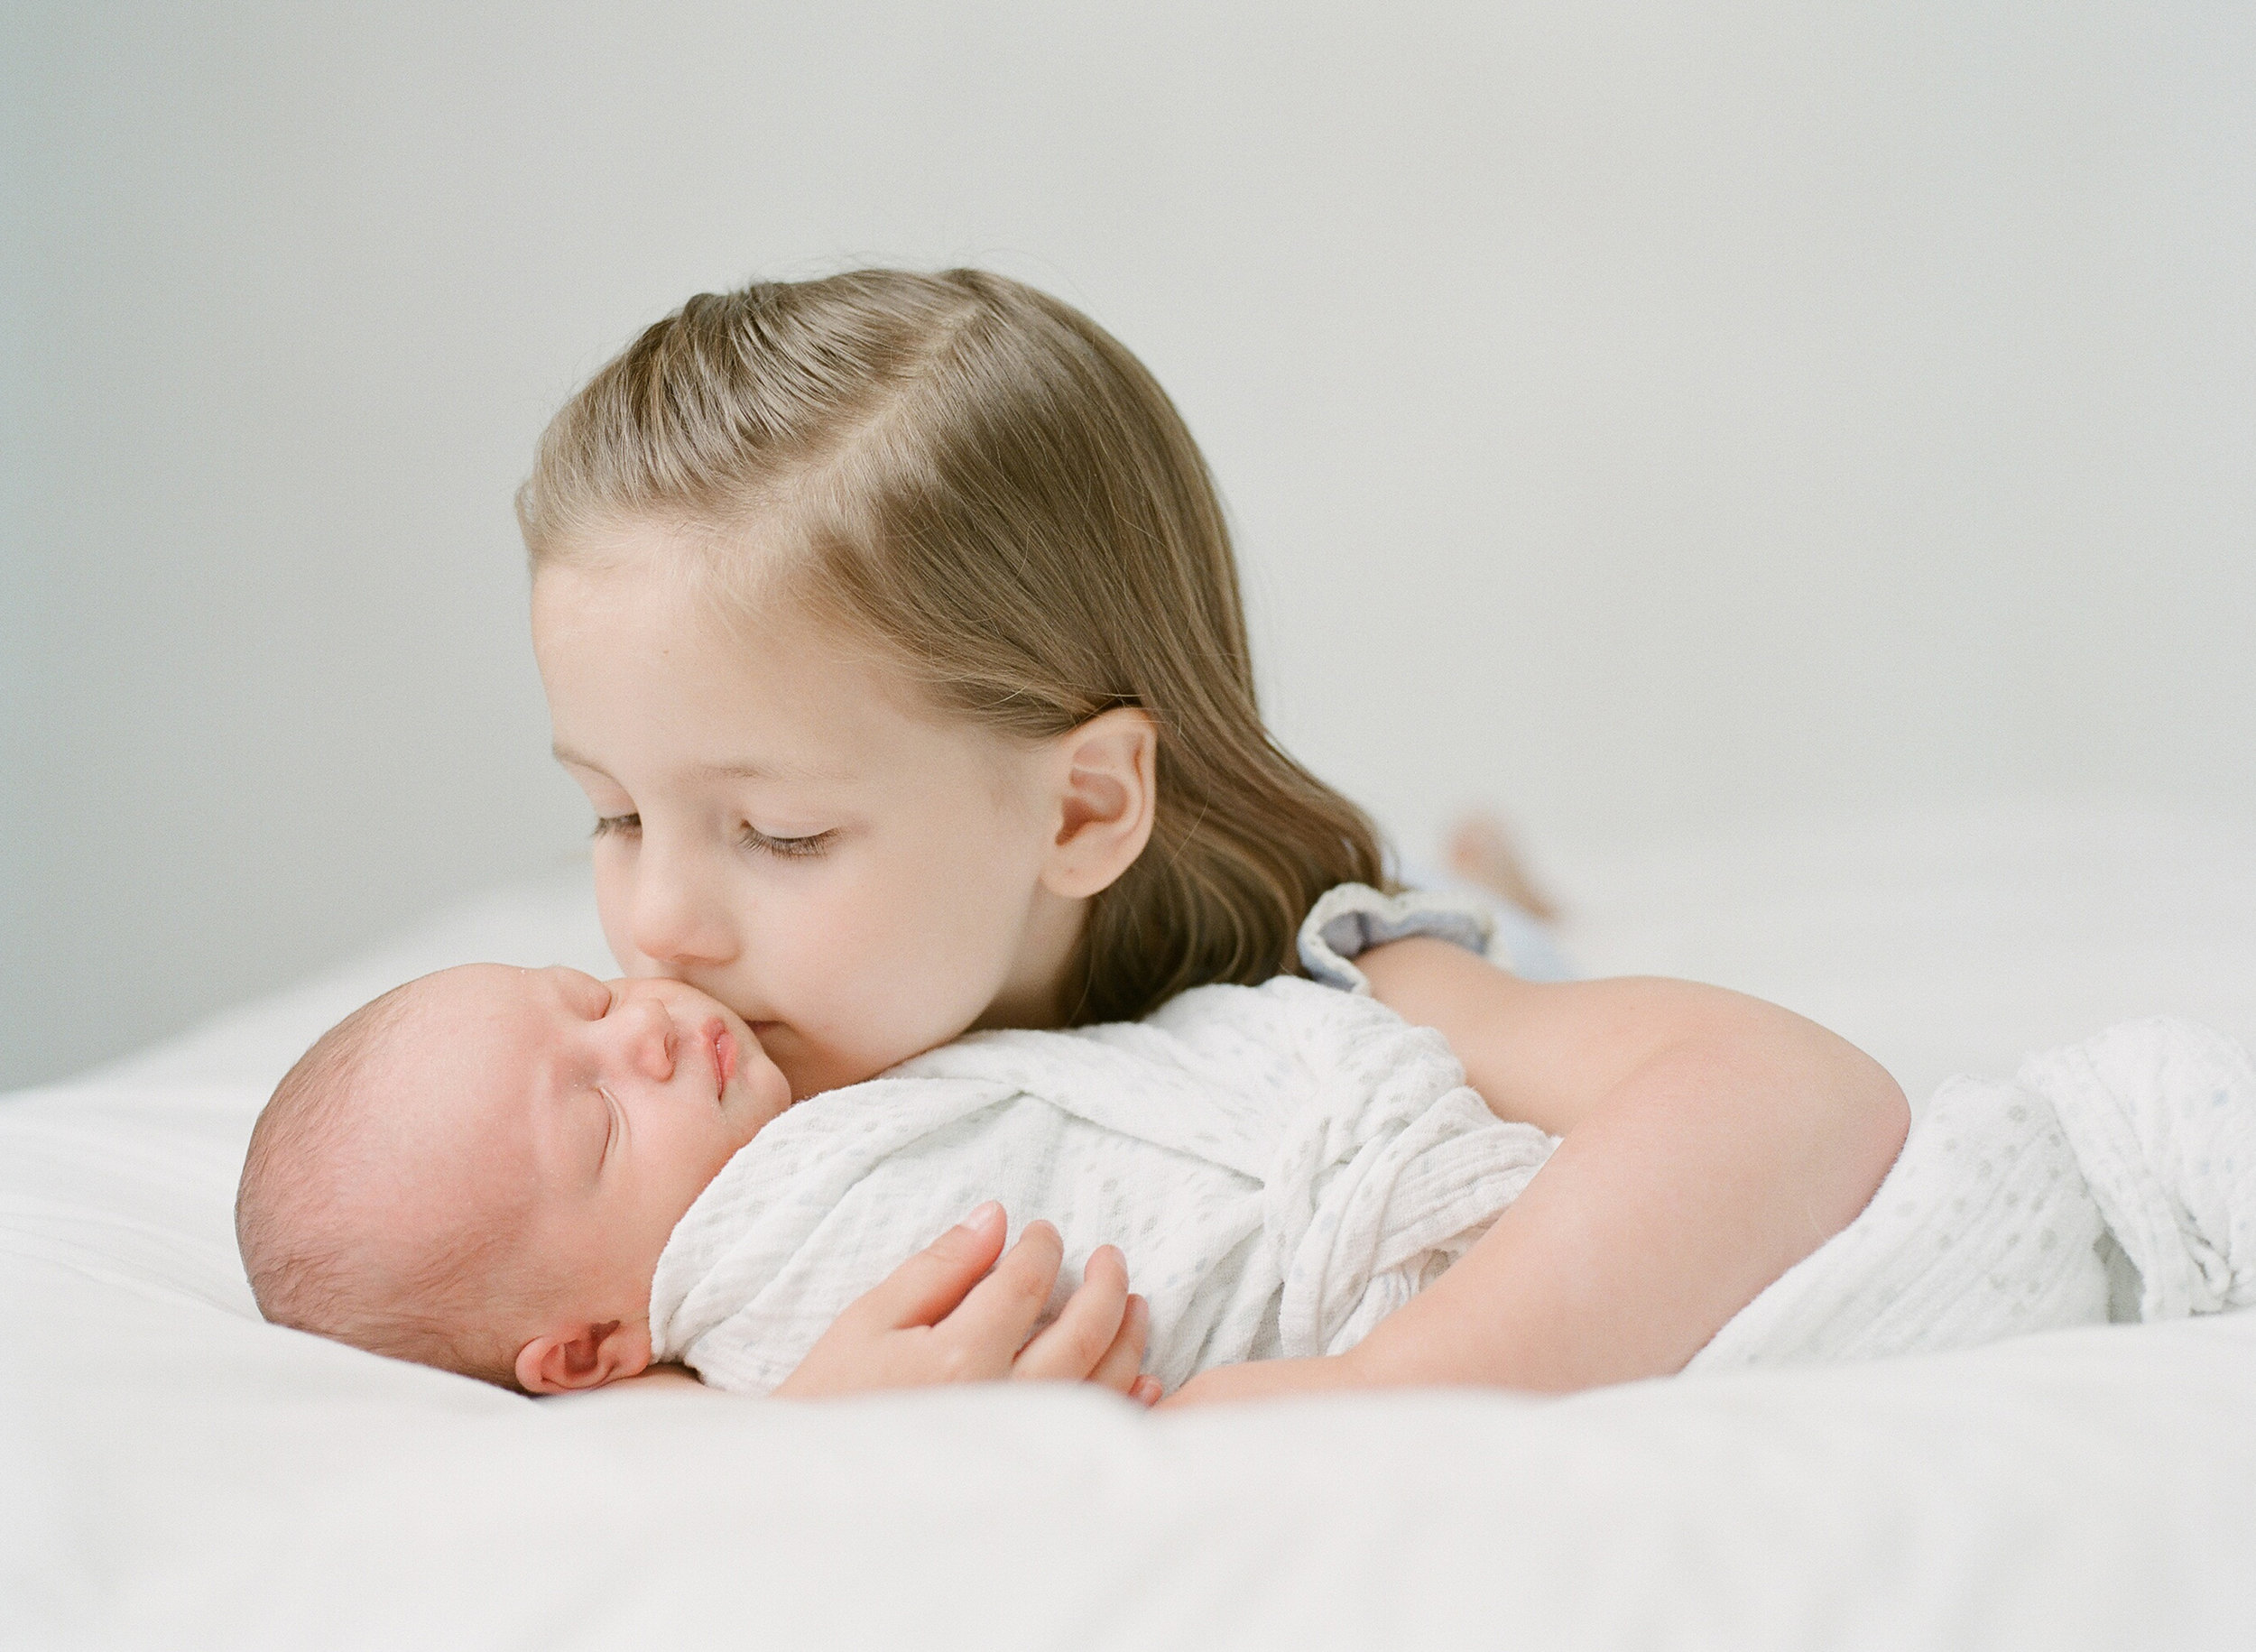 Newborn photographer Seattle | Sandra Coan | Baby and sister photographed on film